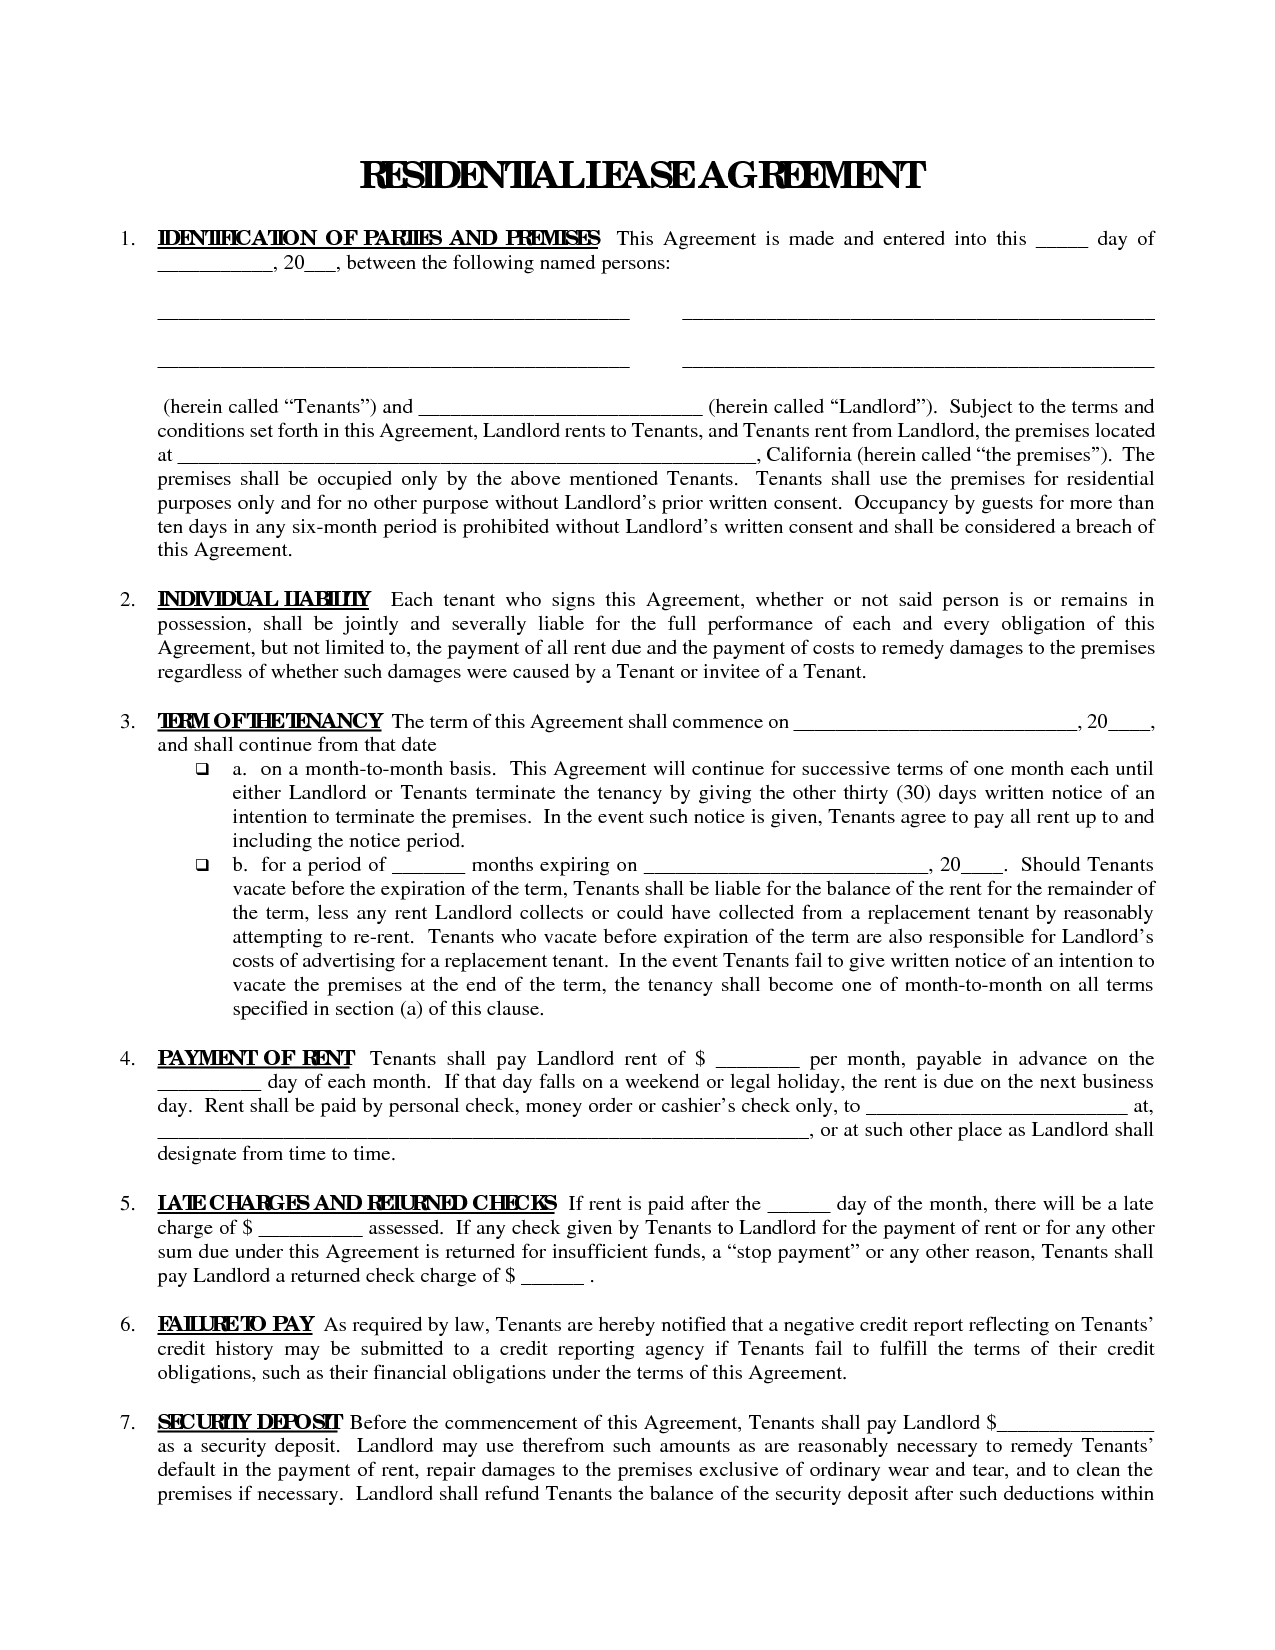 Printable Residential Free House Lease Agreement – Free Residential Lease